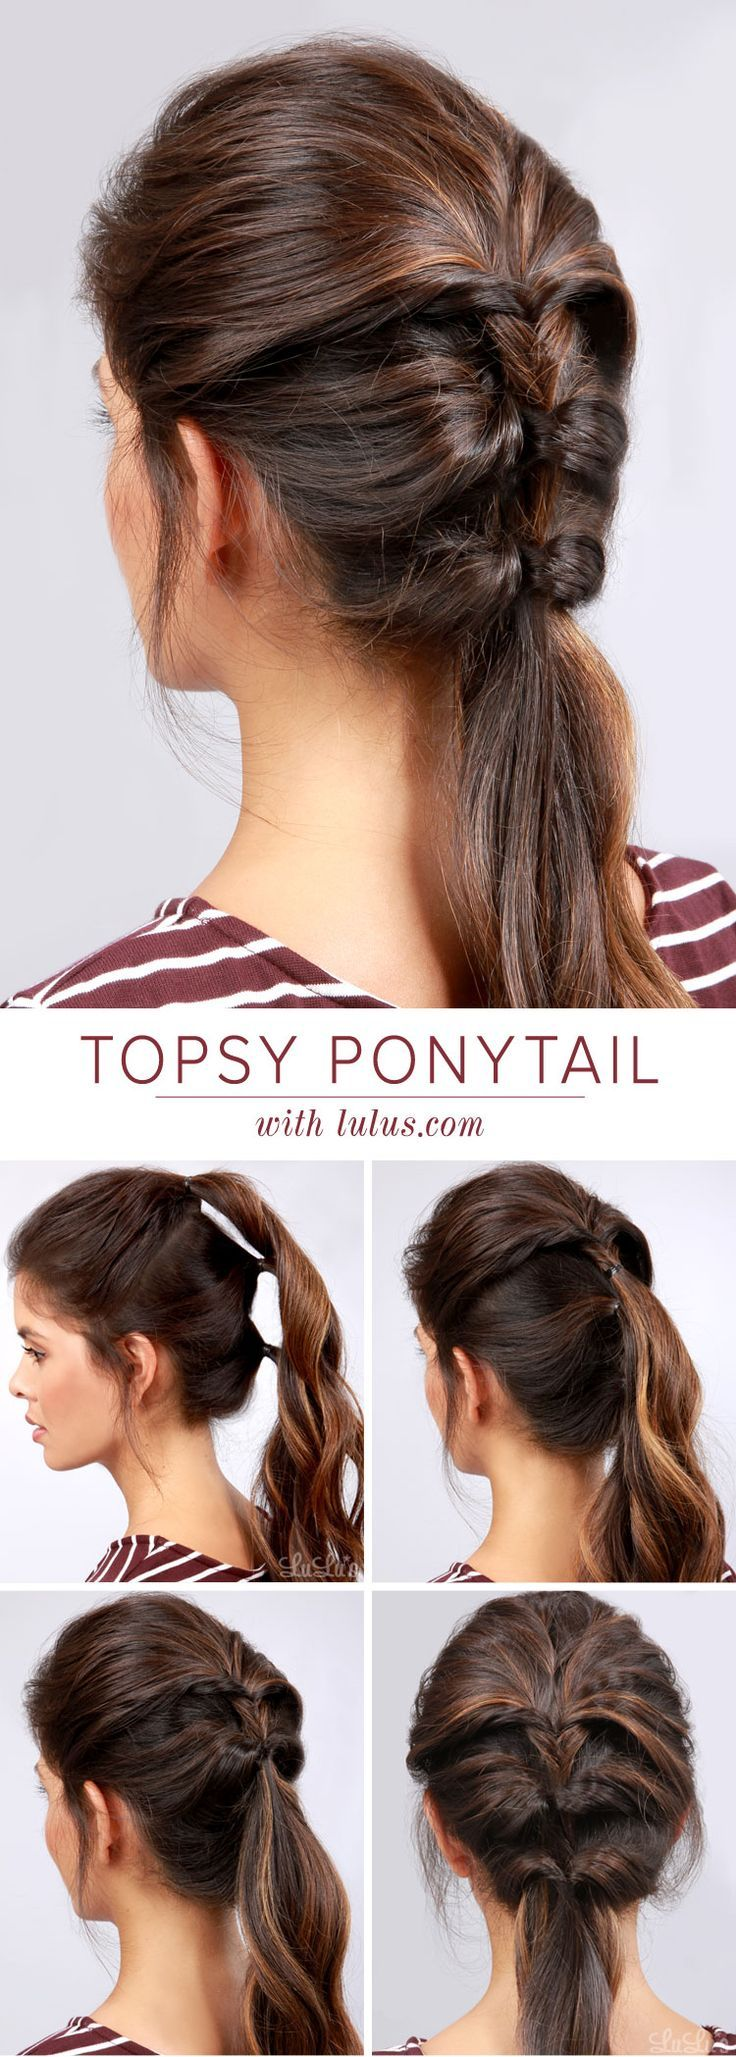 Cute Ponytail Hairstyles Peinado Colas De Caballo Originales Fotos  Actitudfem  Hair